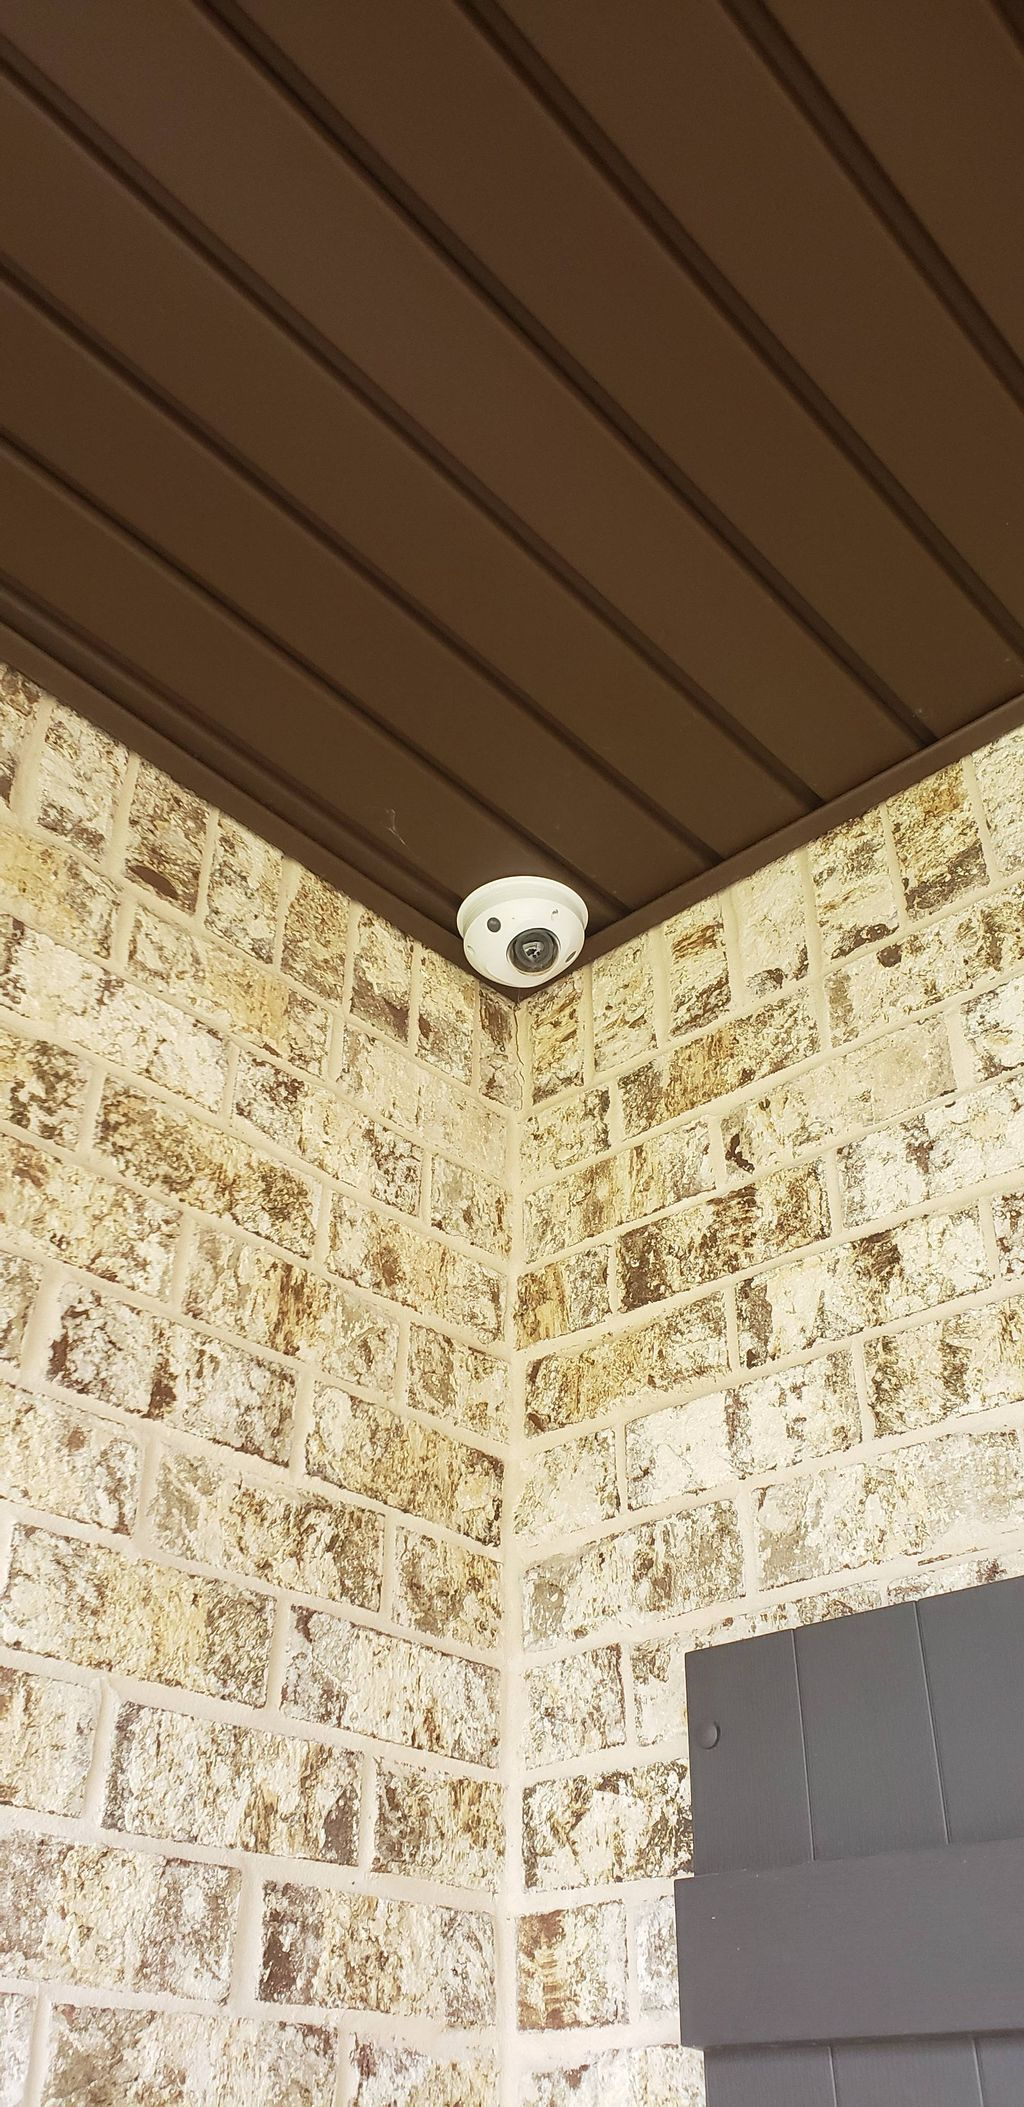 Home Security and Alarms Install - Murfreesboro 2019